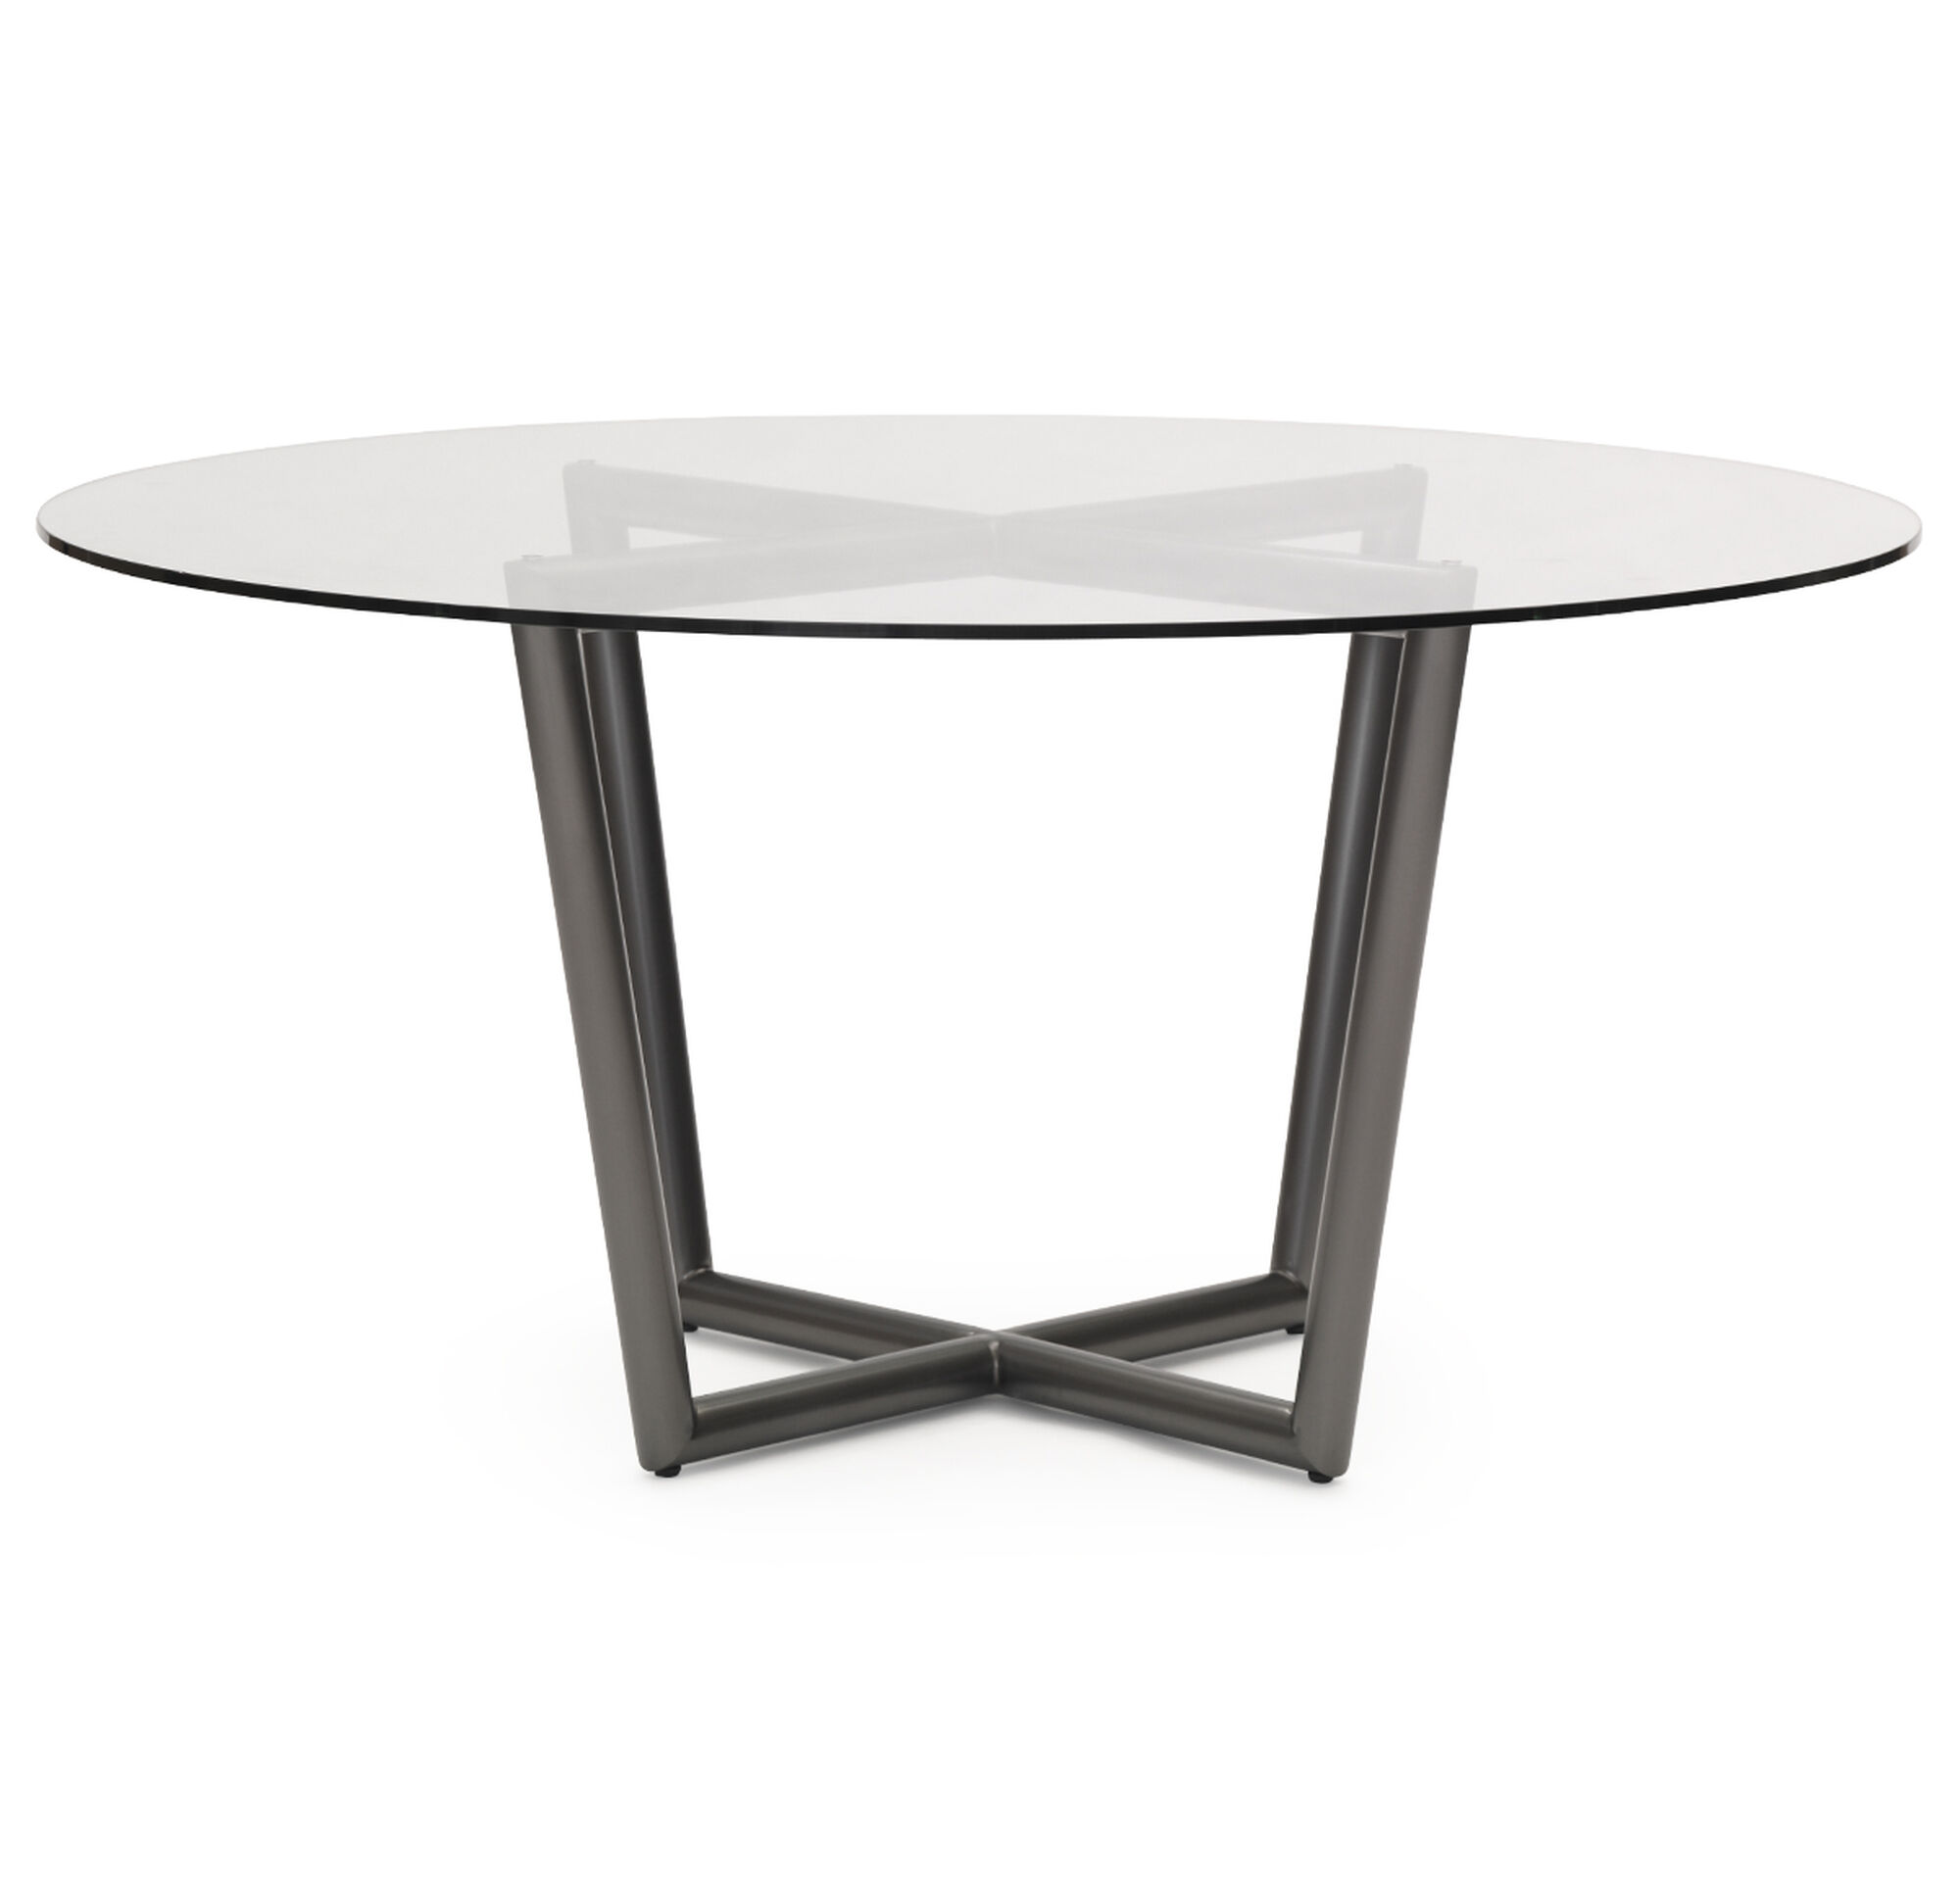 MODERN ROUND DINING TABLE PEWTER - All modern round dining table